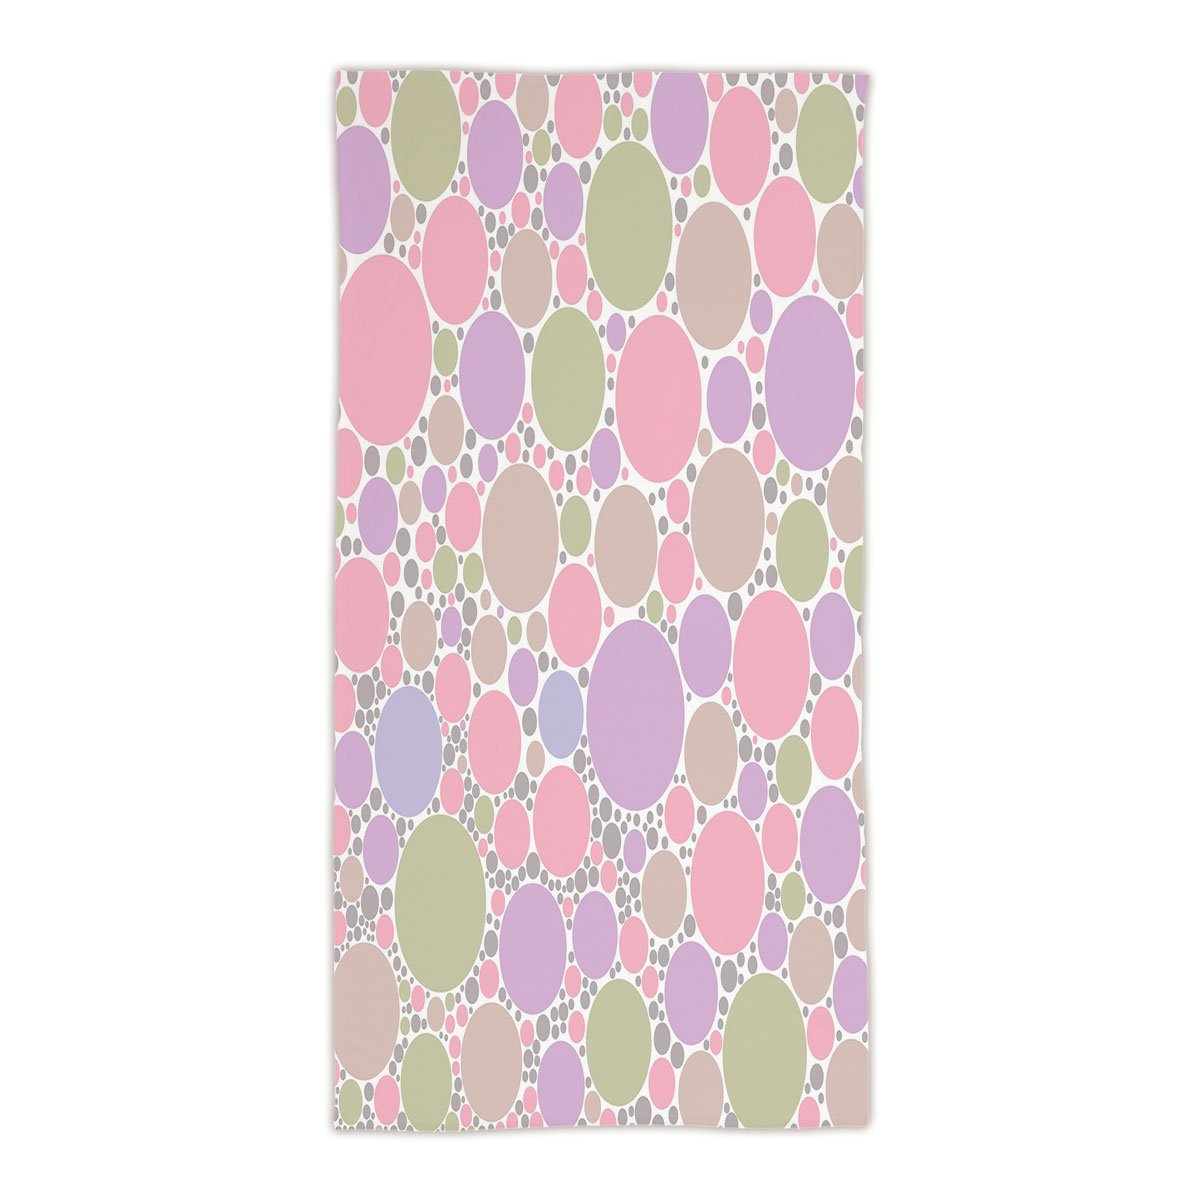 31.49''W x 62.99''L Cotton Microfiber Bath/Hand Towel,Pastel,Soft Large Small Geometric Circle Oval Polka Dots Retro Style Feminine Decorative,Rose Pale Pink and Green,Ultra Soft,For Hotel Spa Beach Poo